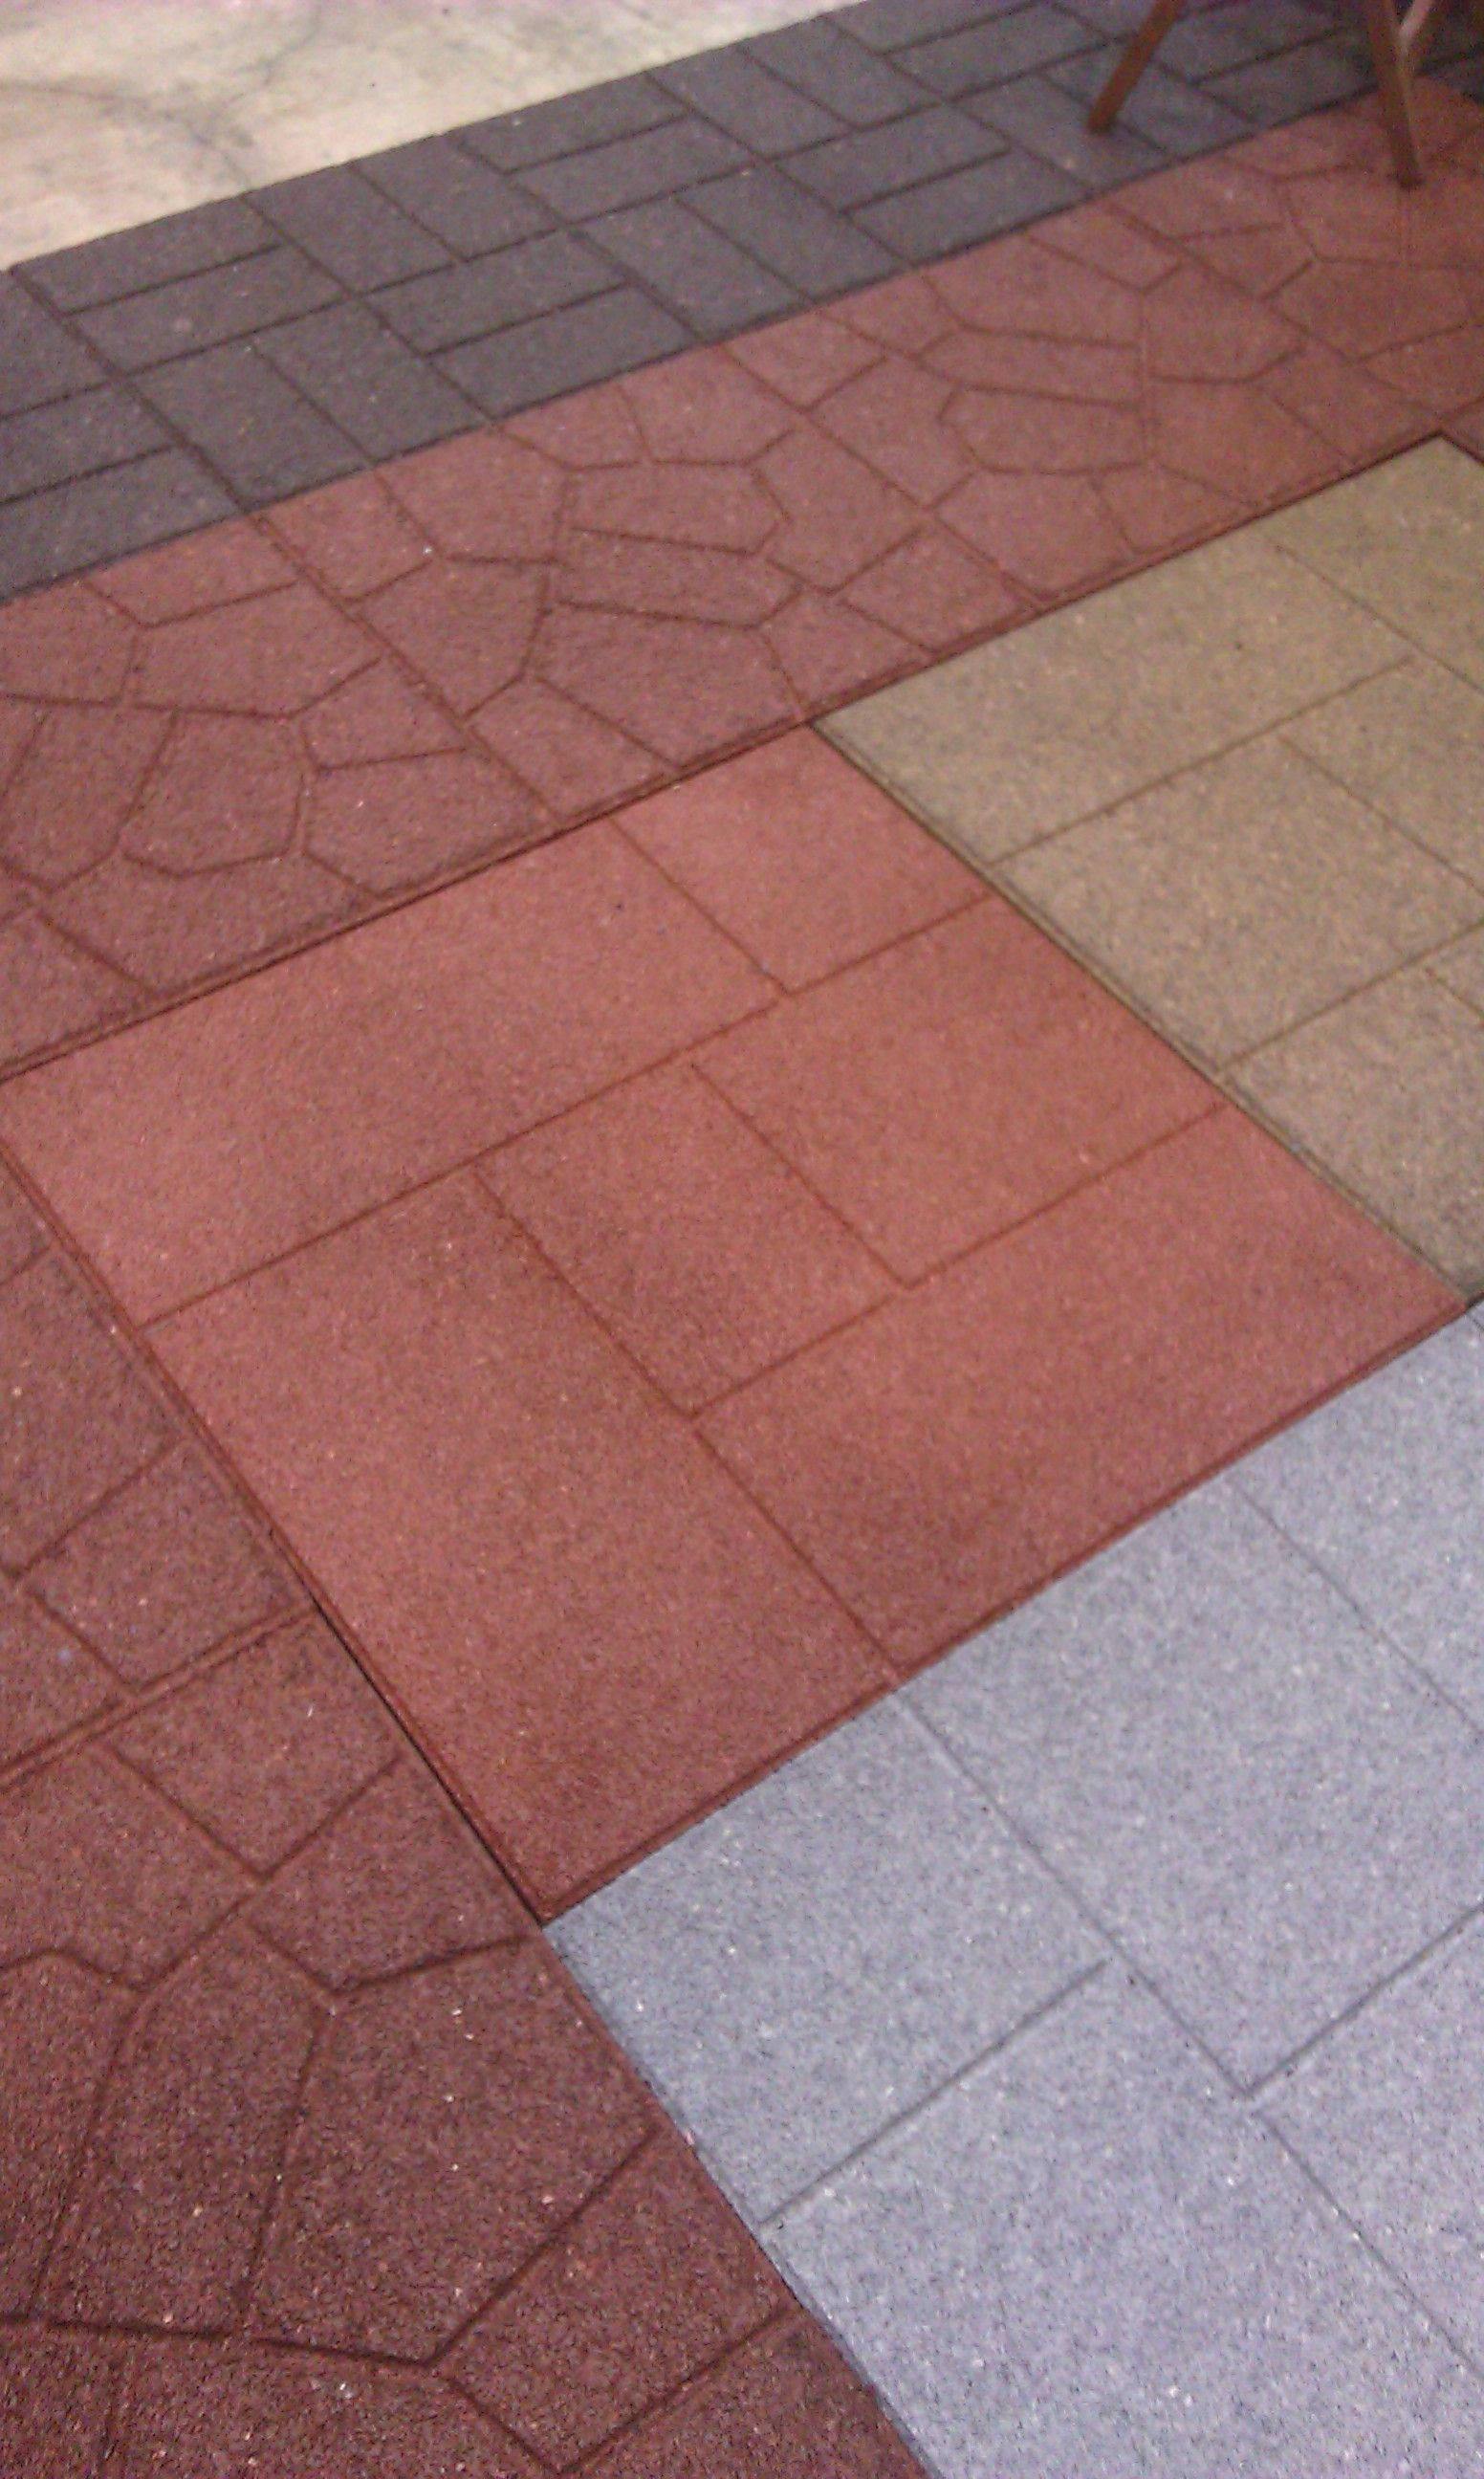 100 Recycled Rubber Flooring Tiles Add Long Lasting Beauty To An Existing Deck Garage Floor Or Patio